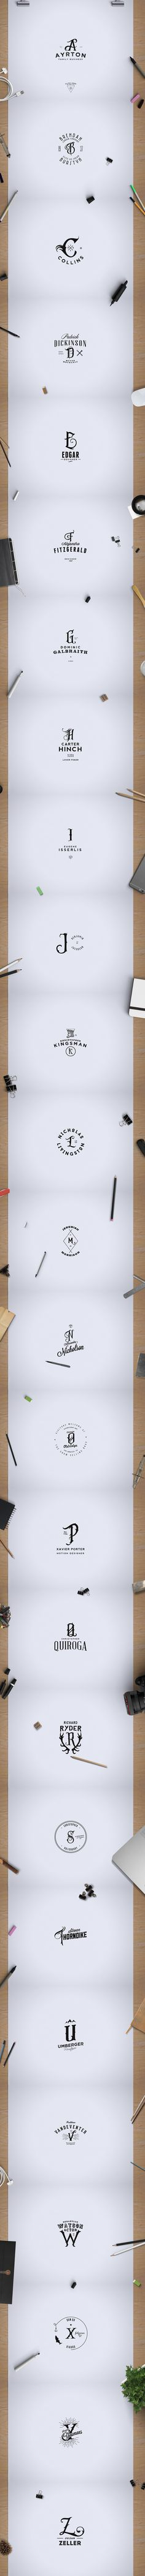 FREE MONOGRAM. ABC VINTAGE LOGOS on Behance